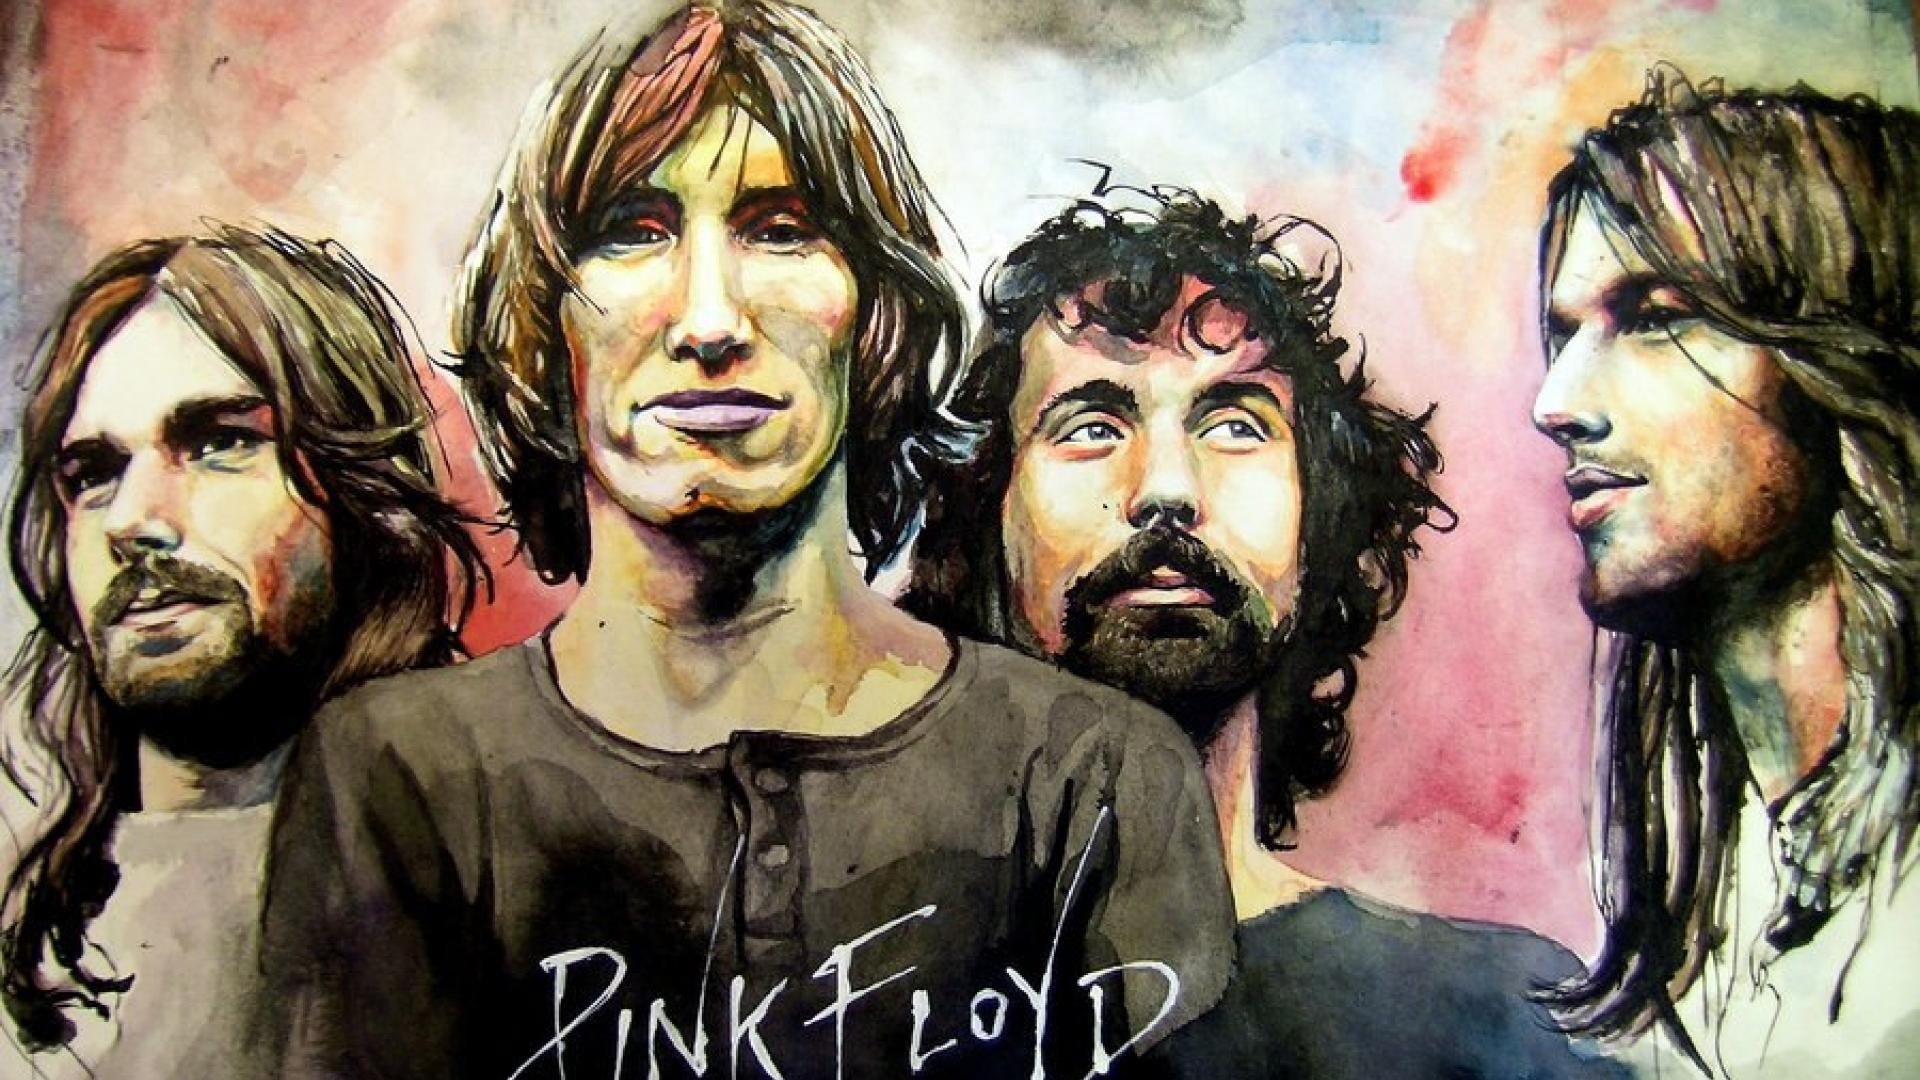 1920x1080 HD Pink Floyd Wallpapers Wallpapers - HD Wallpapers